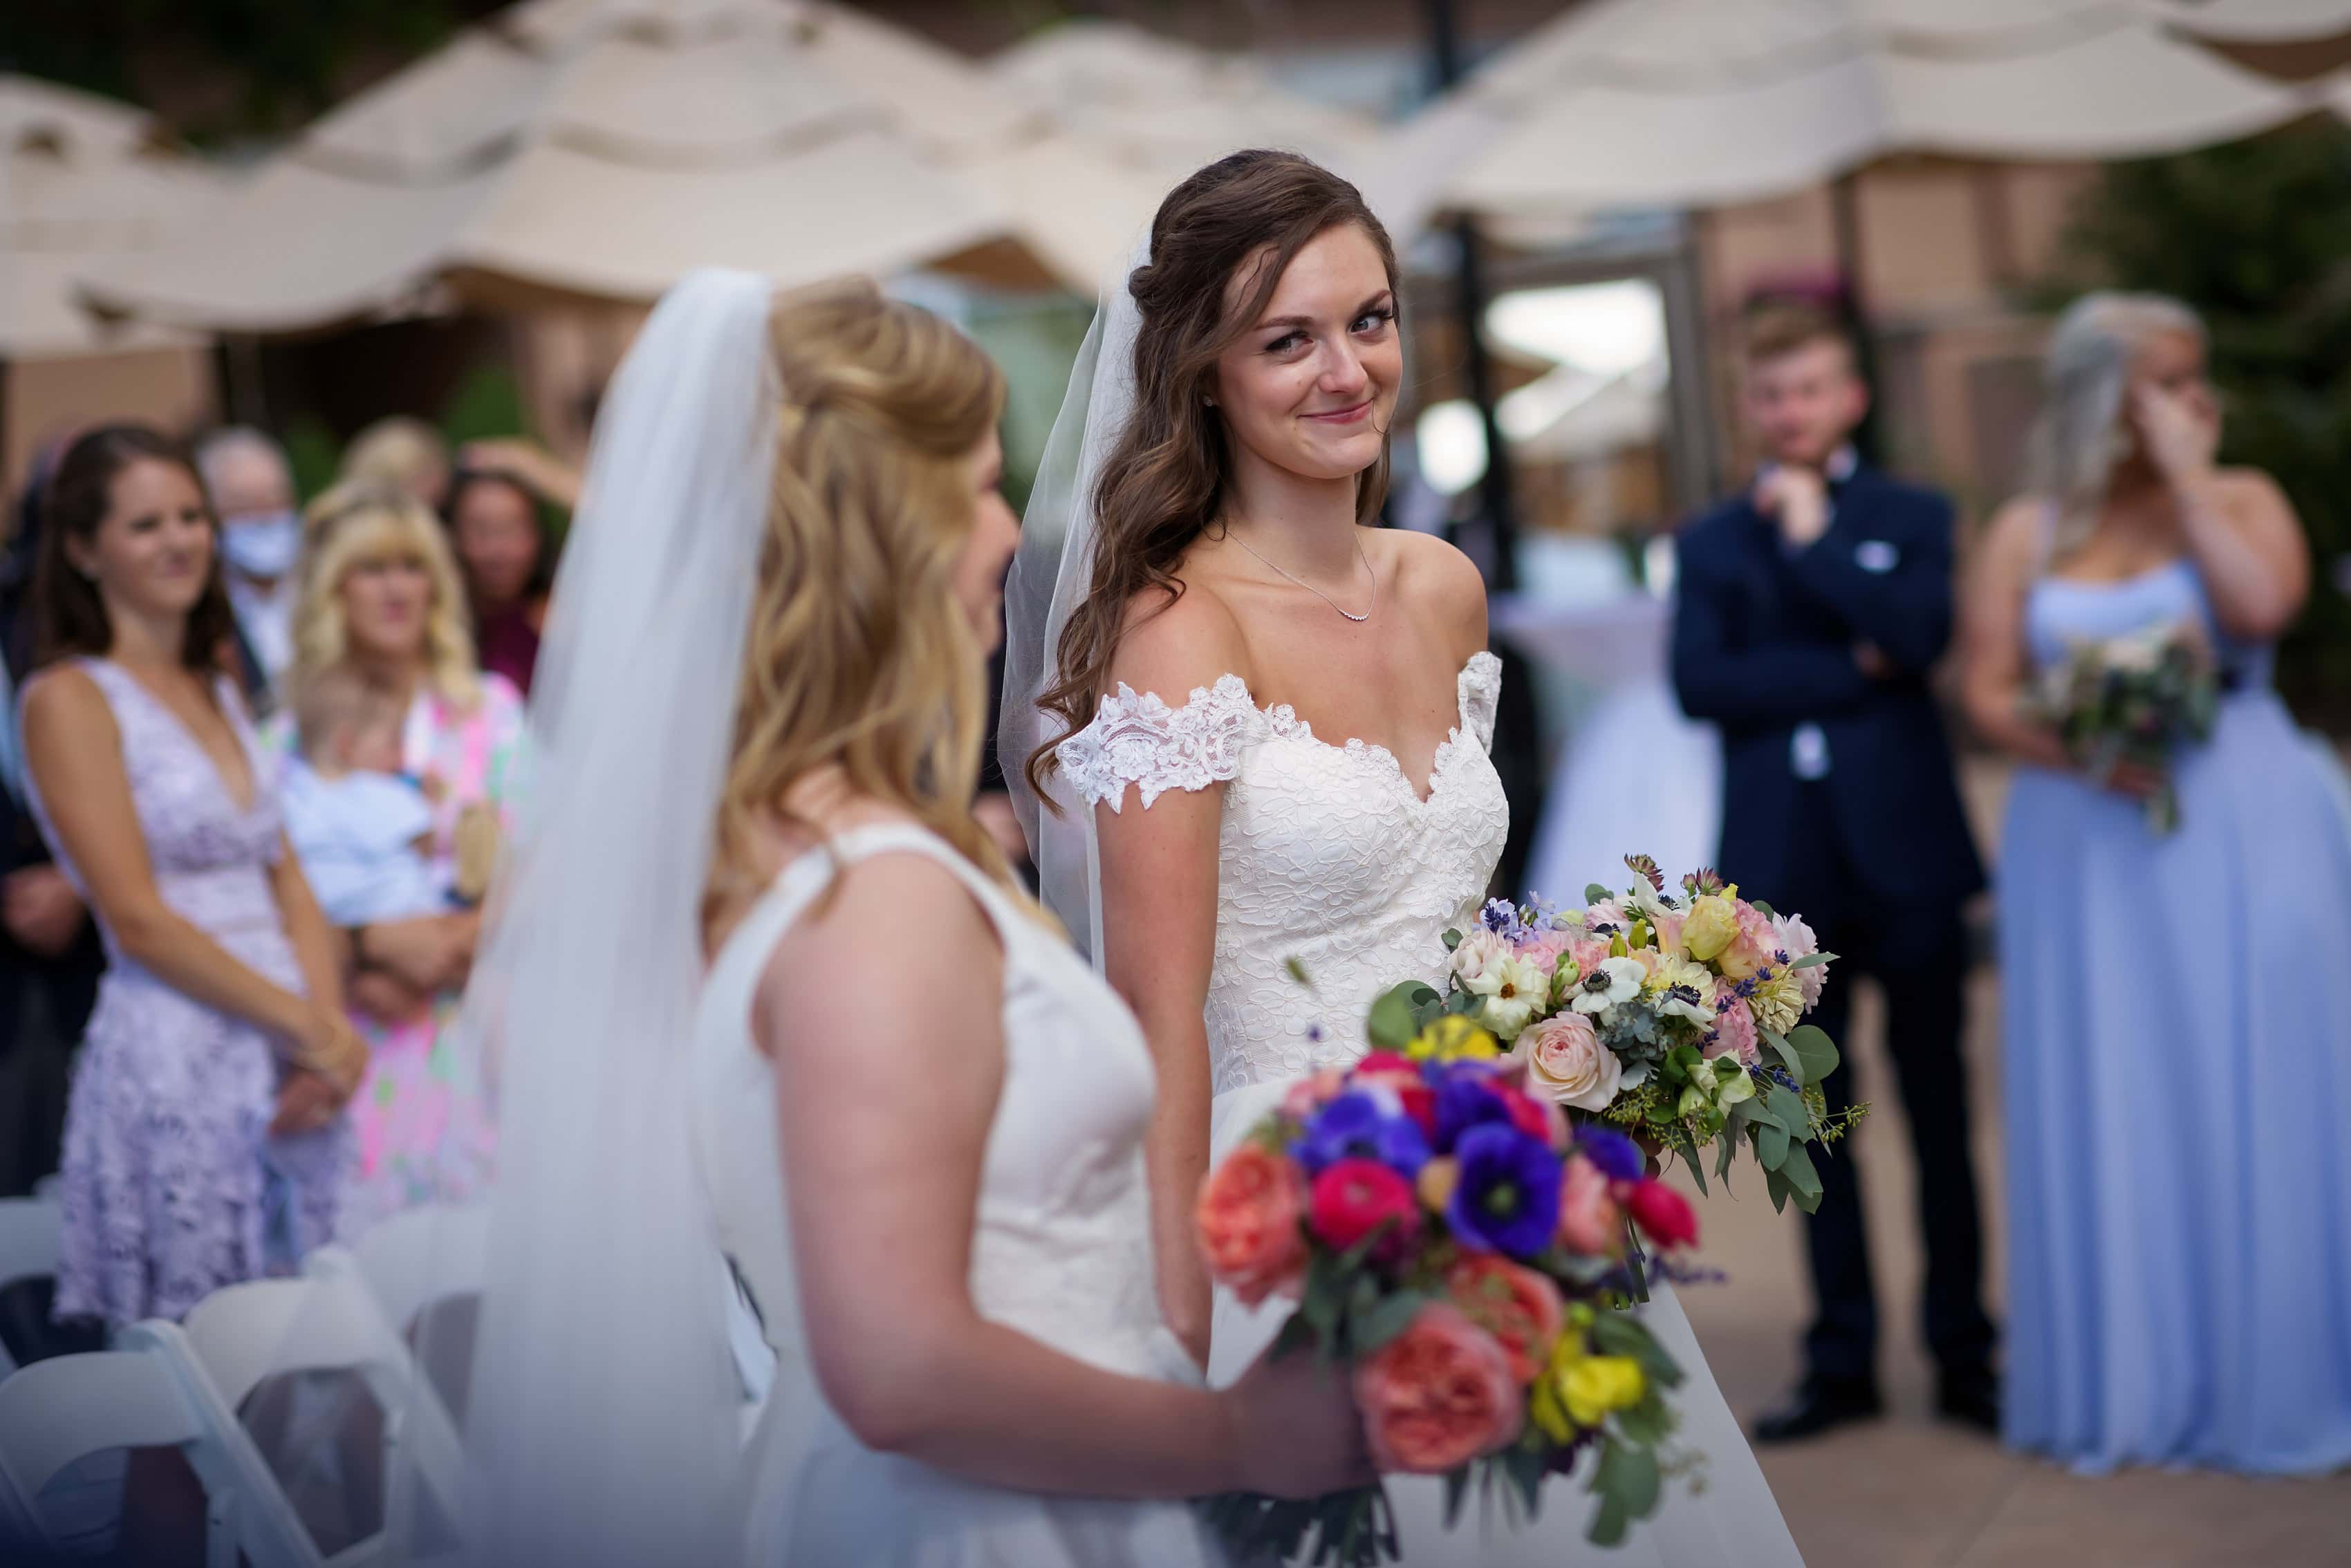 brides look at each other during wedding ceremony with two brides at The Broadmoor in Colorado Springs, Colorado